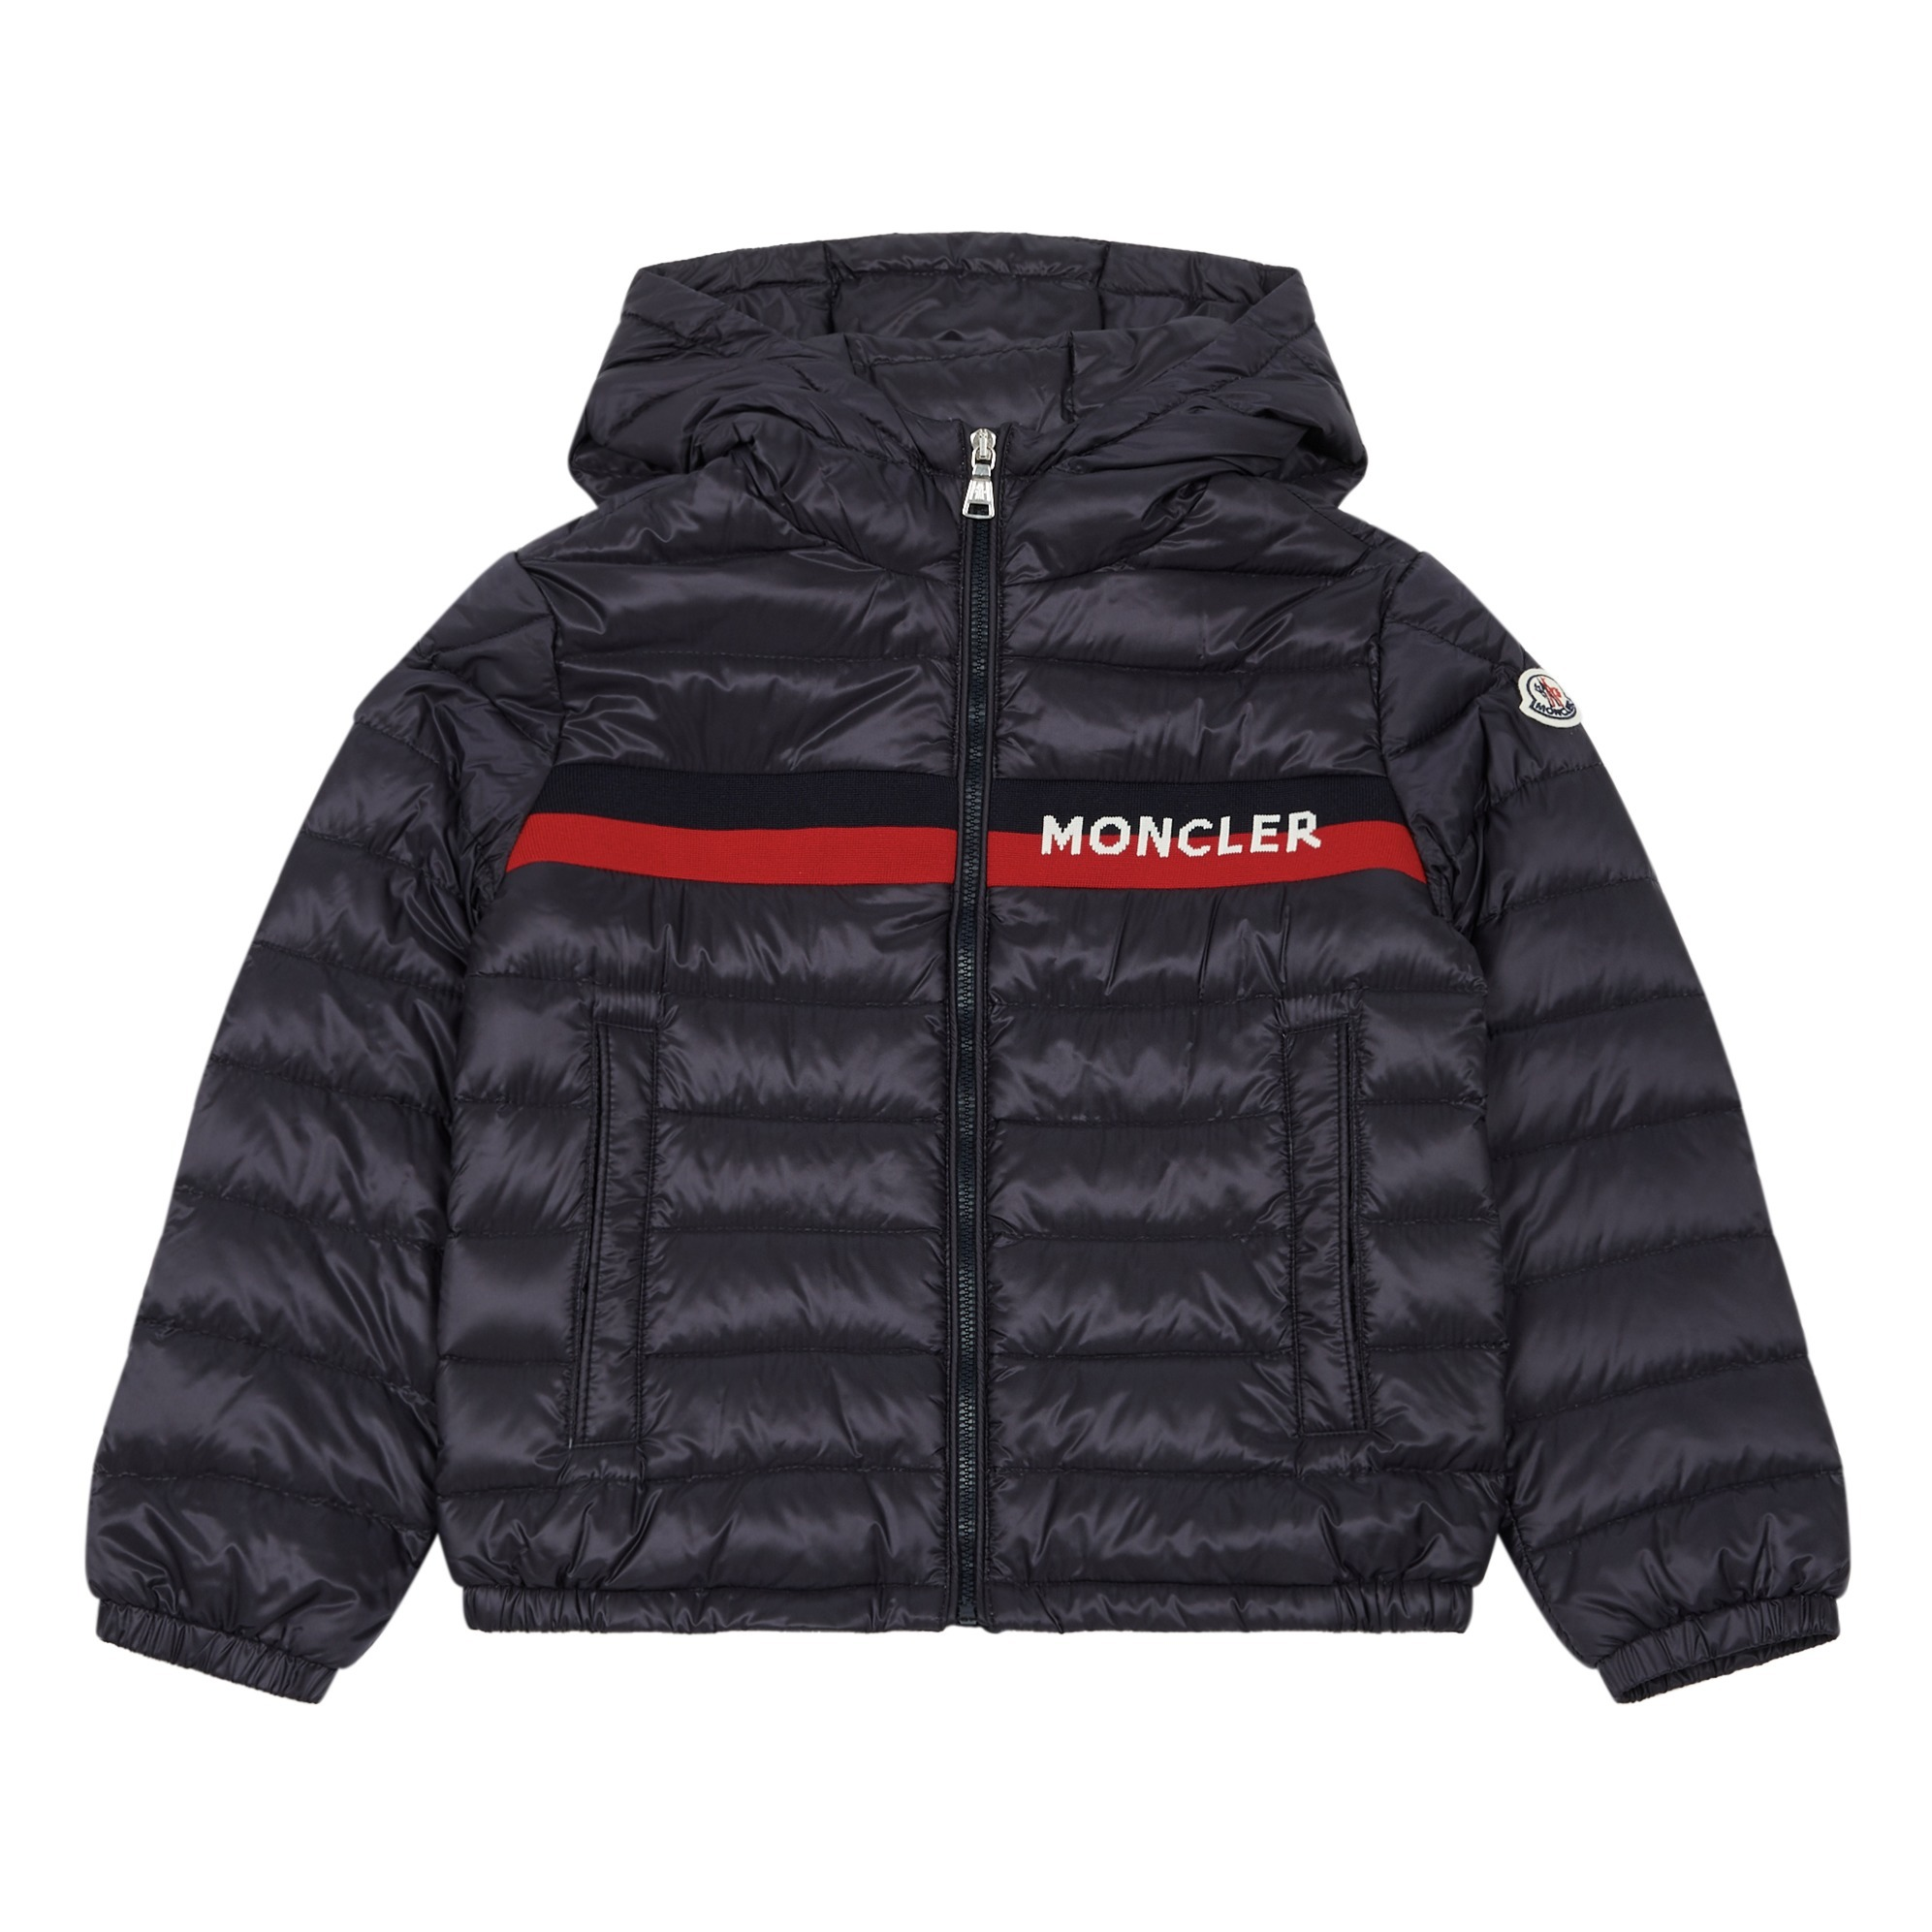 factory authentic 0f57c df2bc Moncler I Neue Kollektion I Smallable